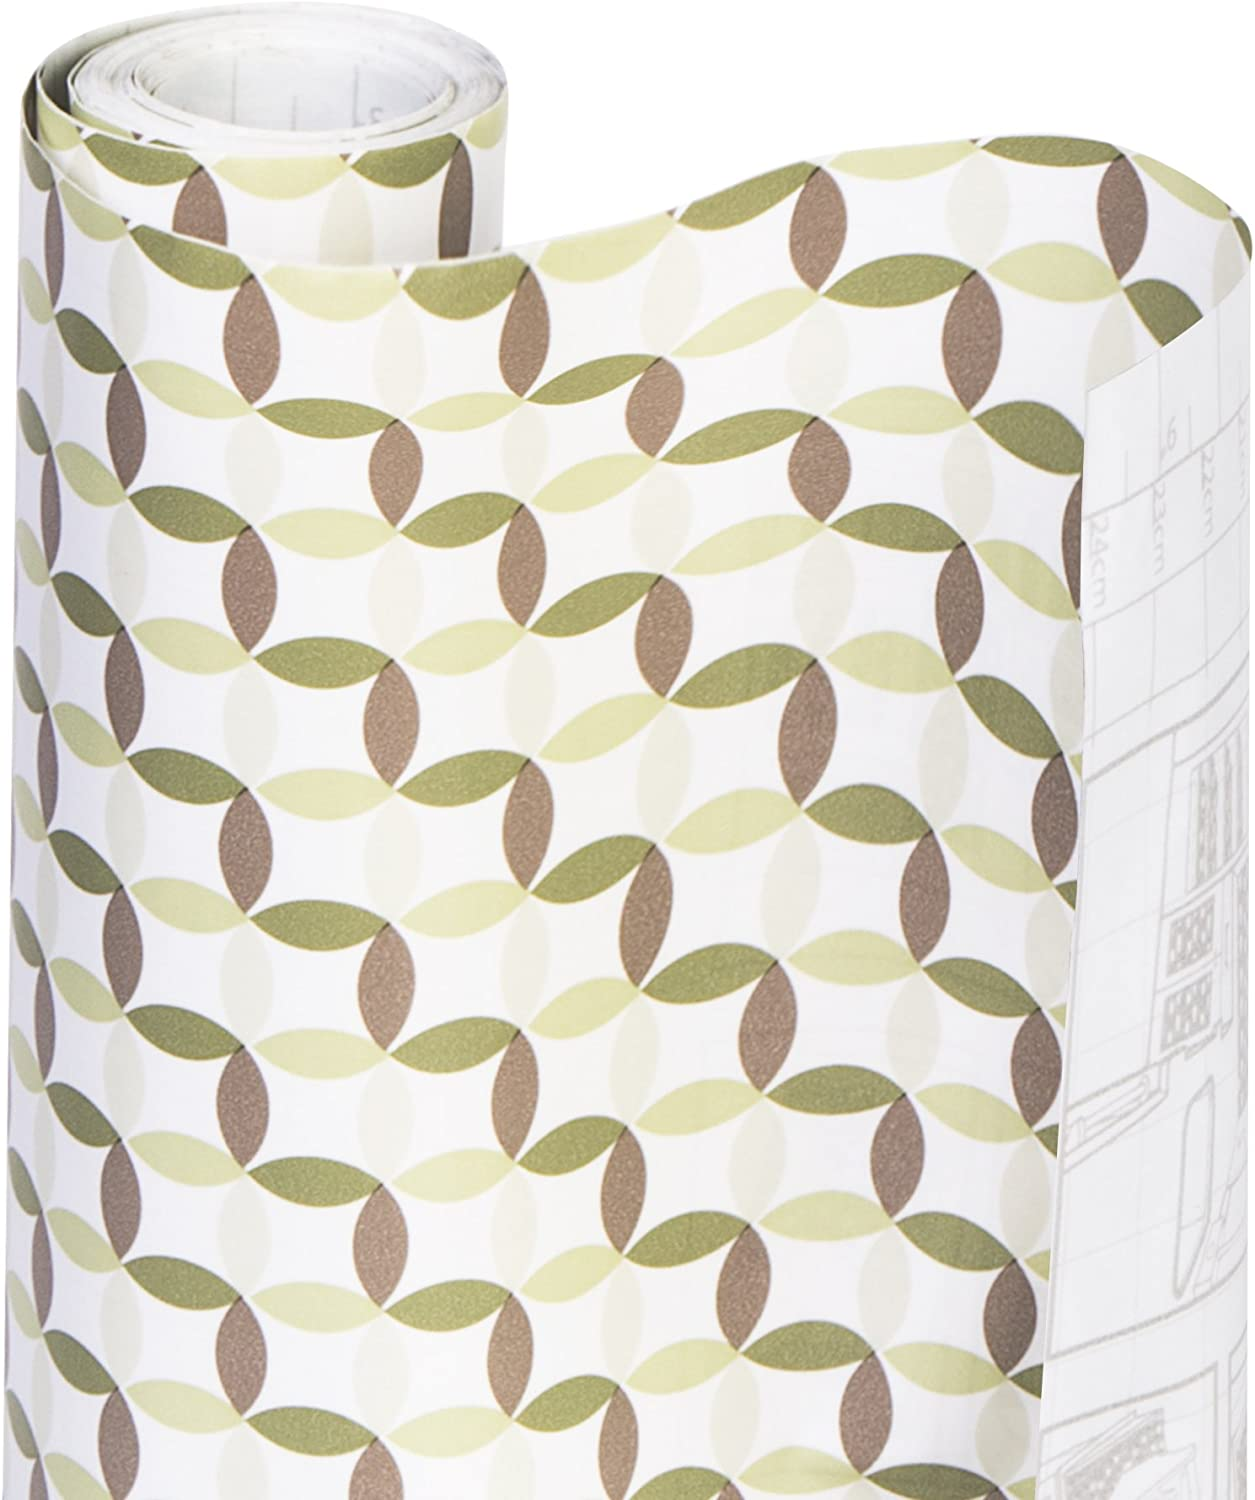 Wipes Clean Kitchen Cutable /& Removable Material Easy Peel Design 18 Inch x 20 Feet Beige Plaid Drawers for Shelves Smart Design Shelf Liner w//Decorative Adhesive Flat Surfaces